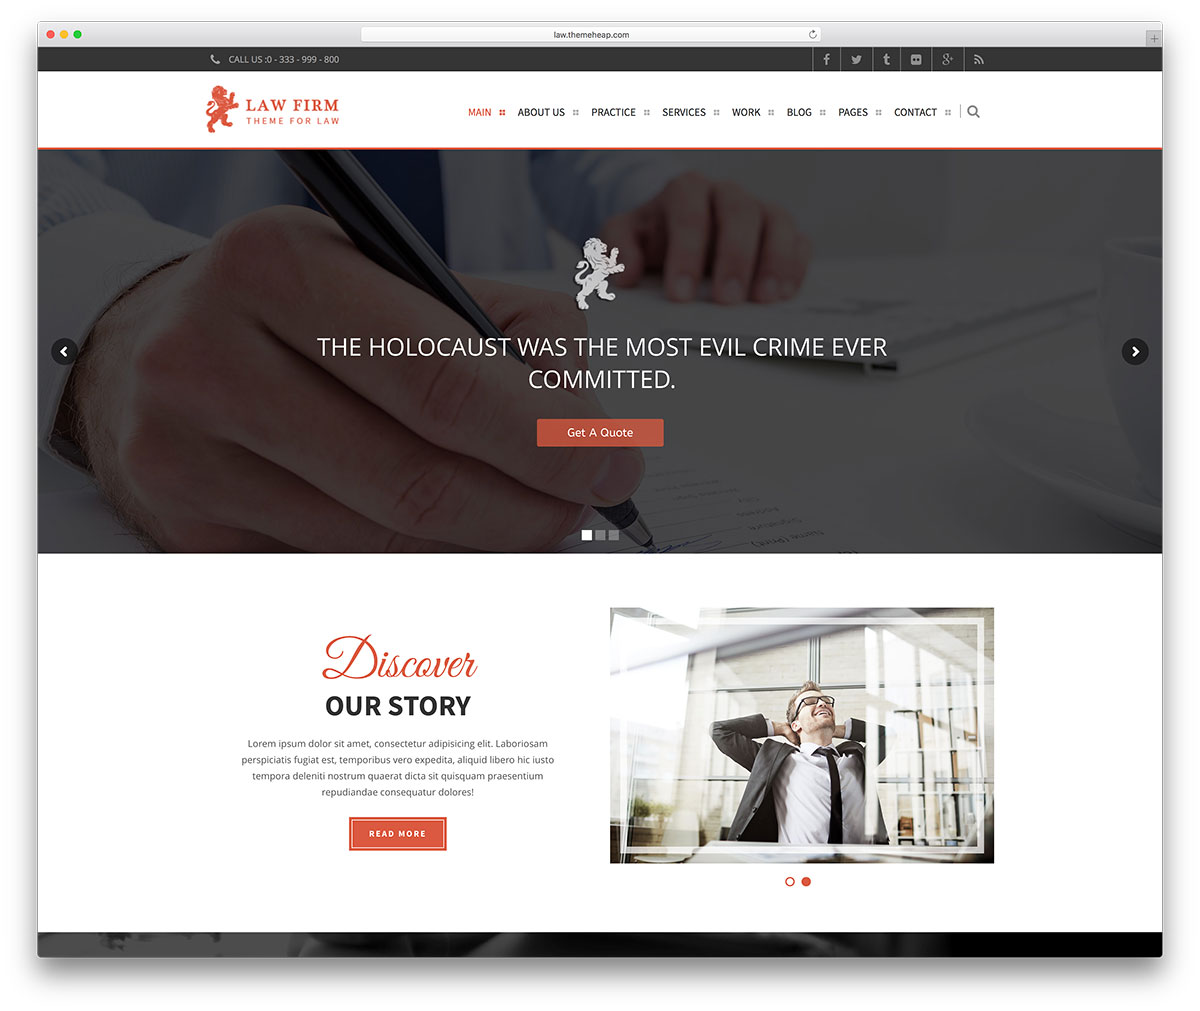 lawfirm-creative-lawyer-wordpress-website-template